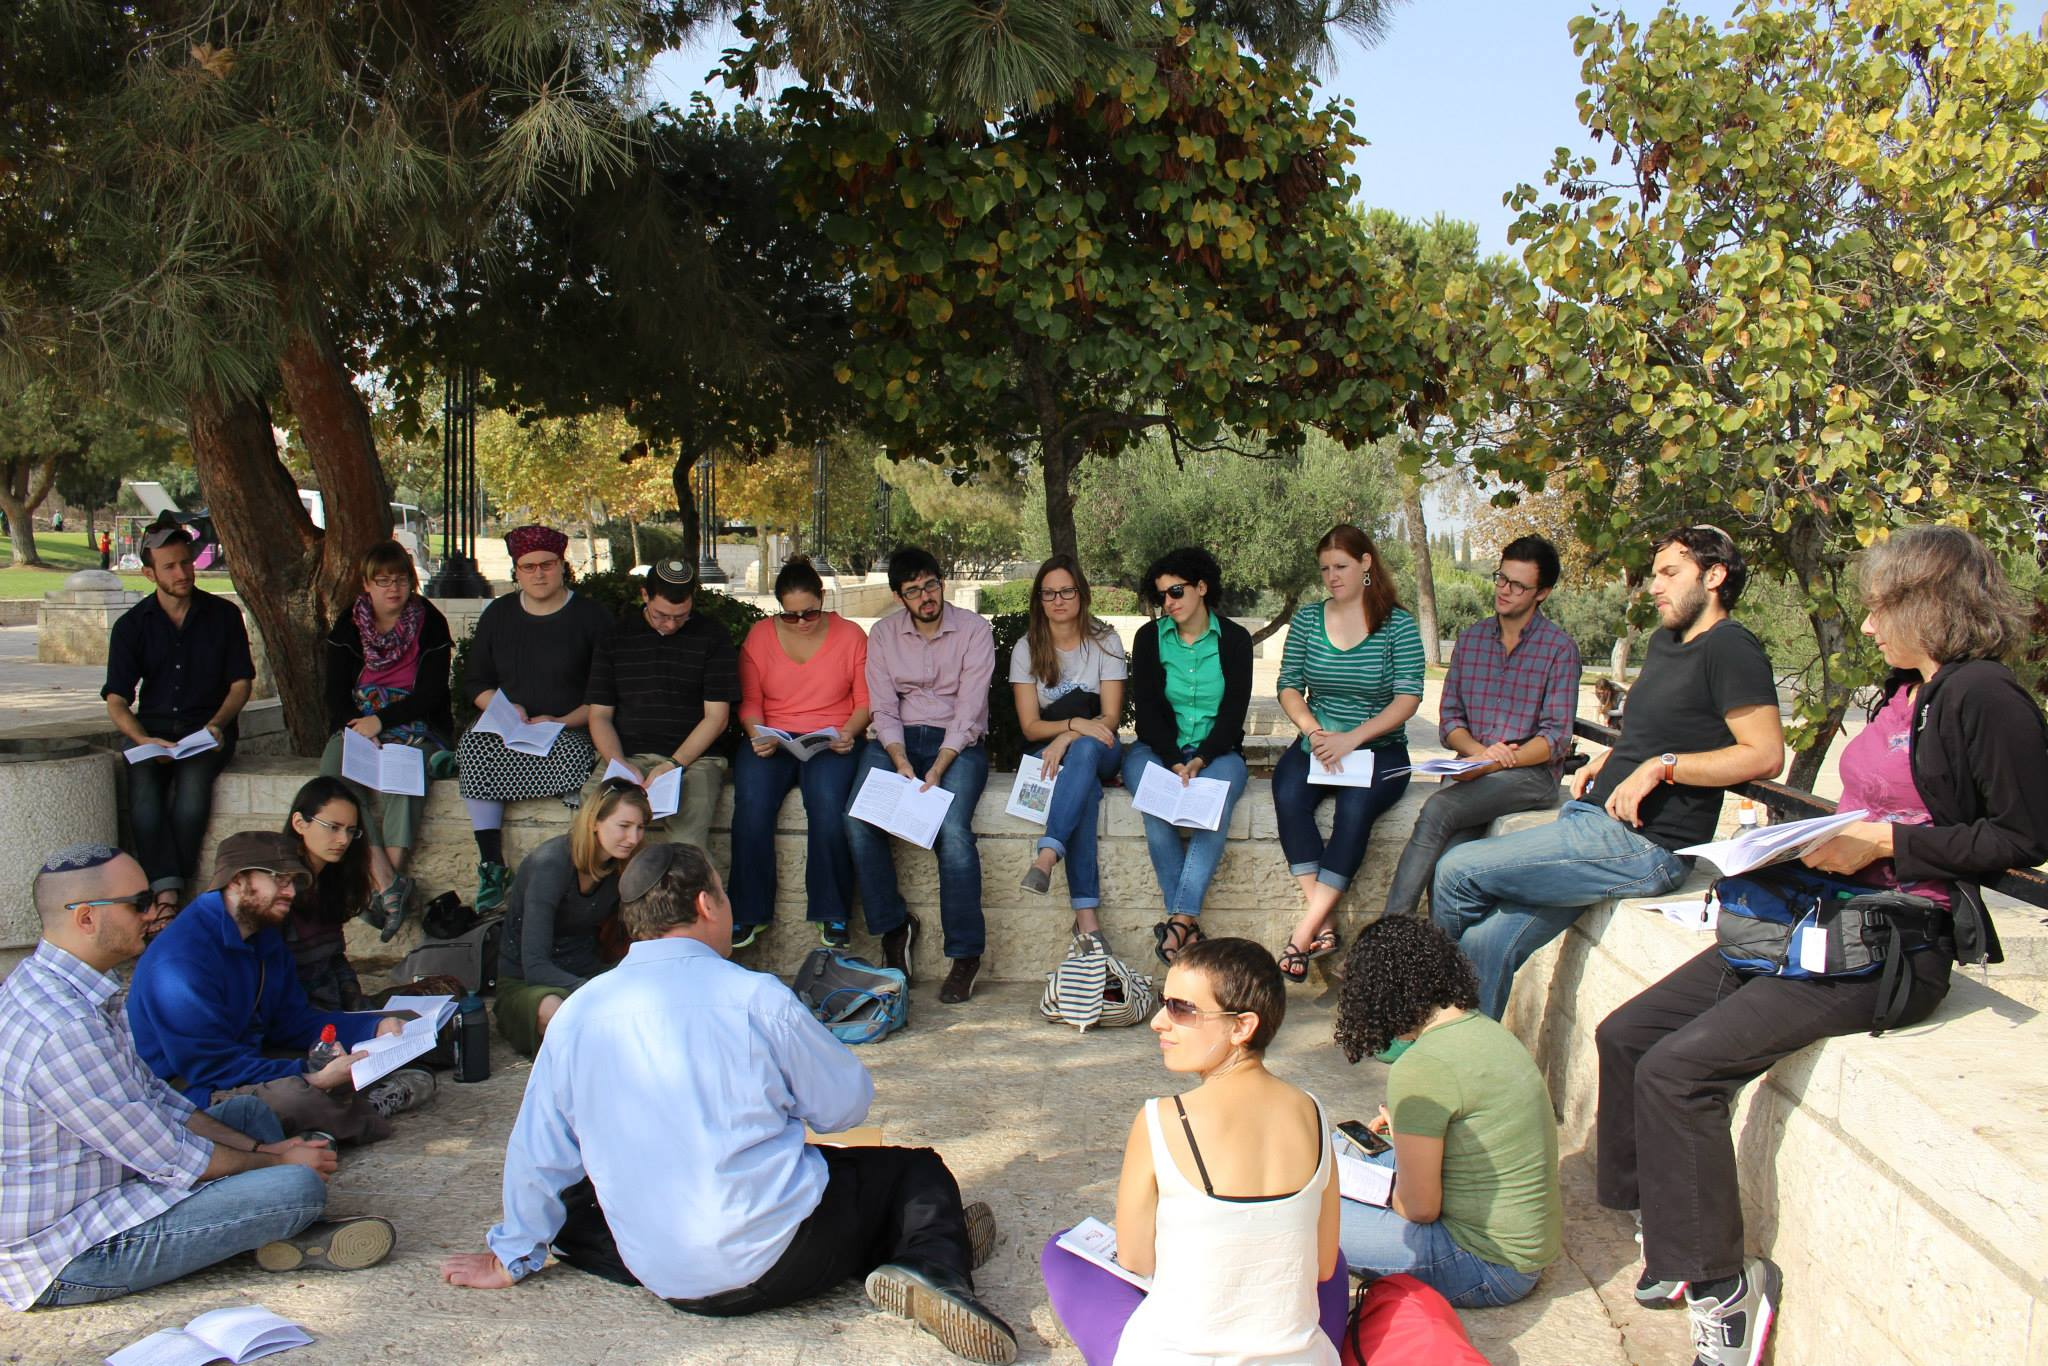 What Does Israel Mean to You? Two Educators Share Their Vision of Israel Education